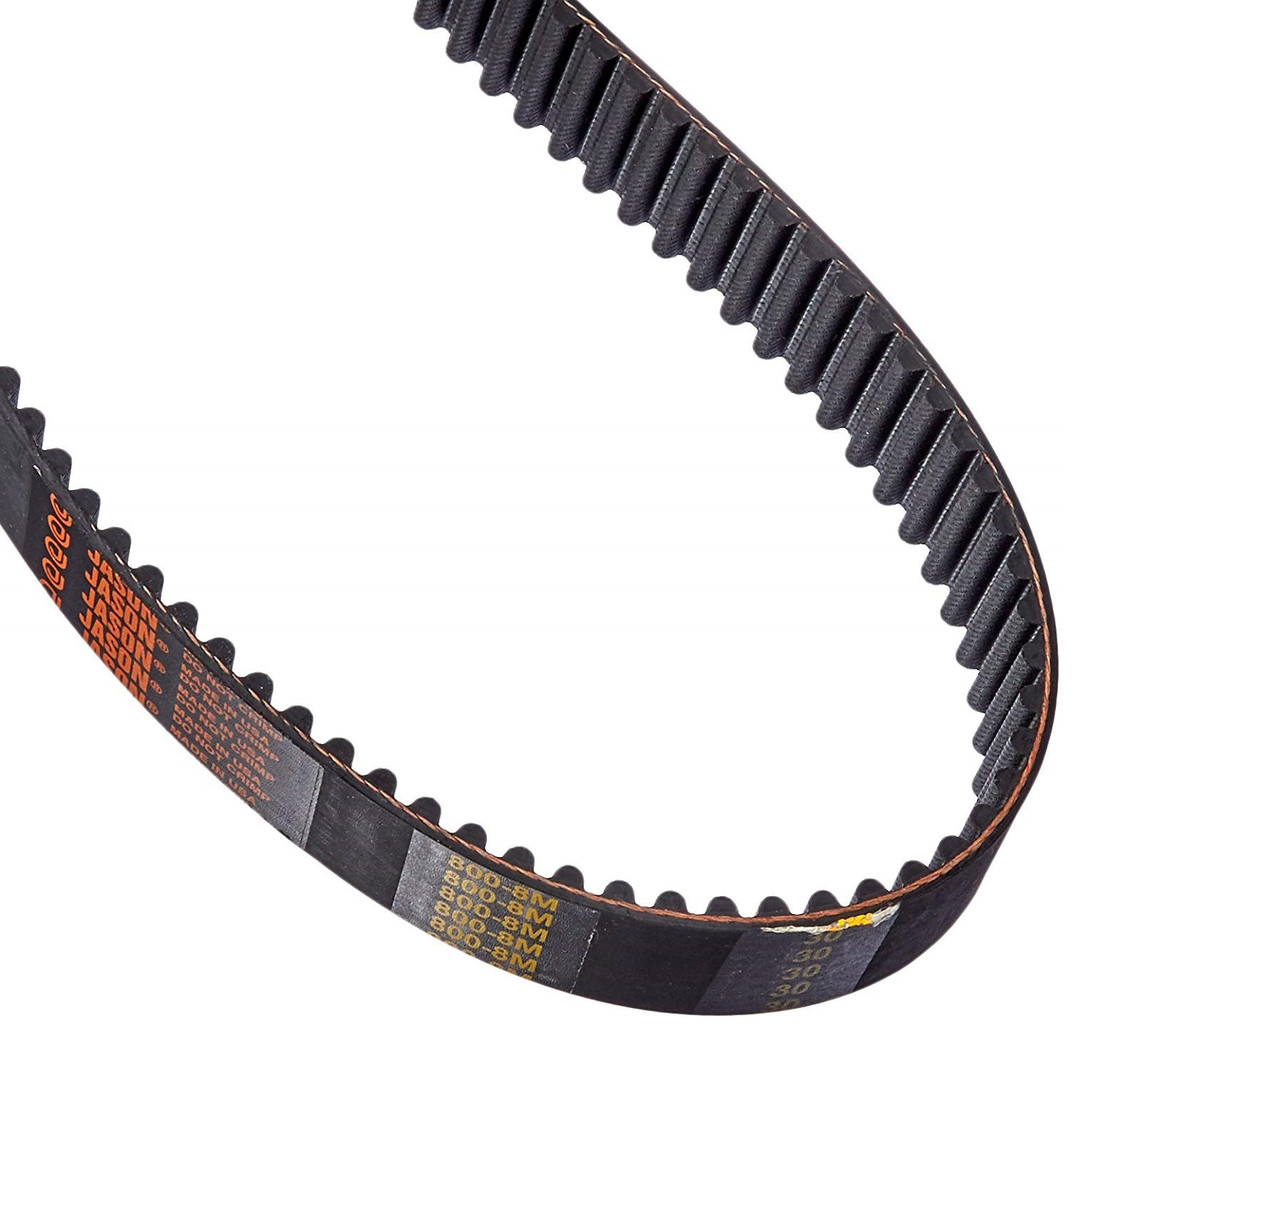 Jason Industrial 1360-8M-80 HTD TIMING BELT FACTORY NEW!